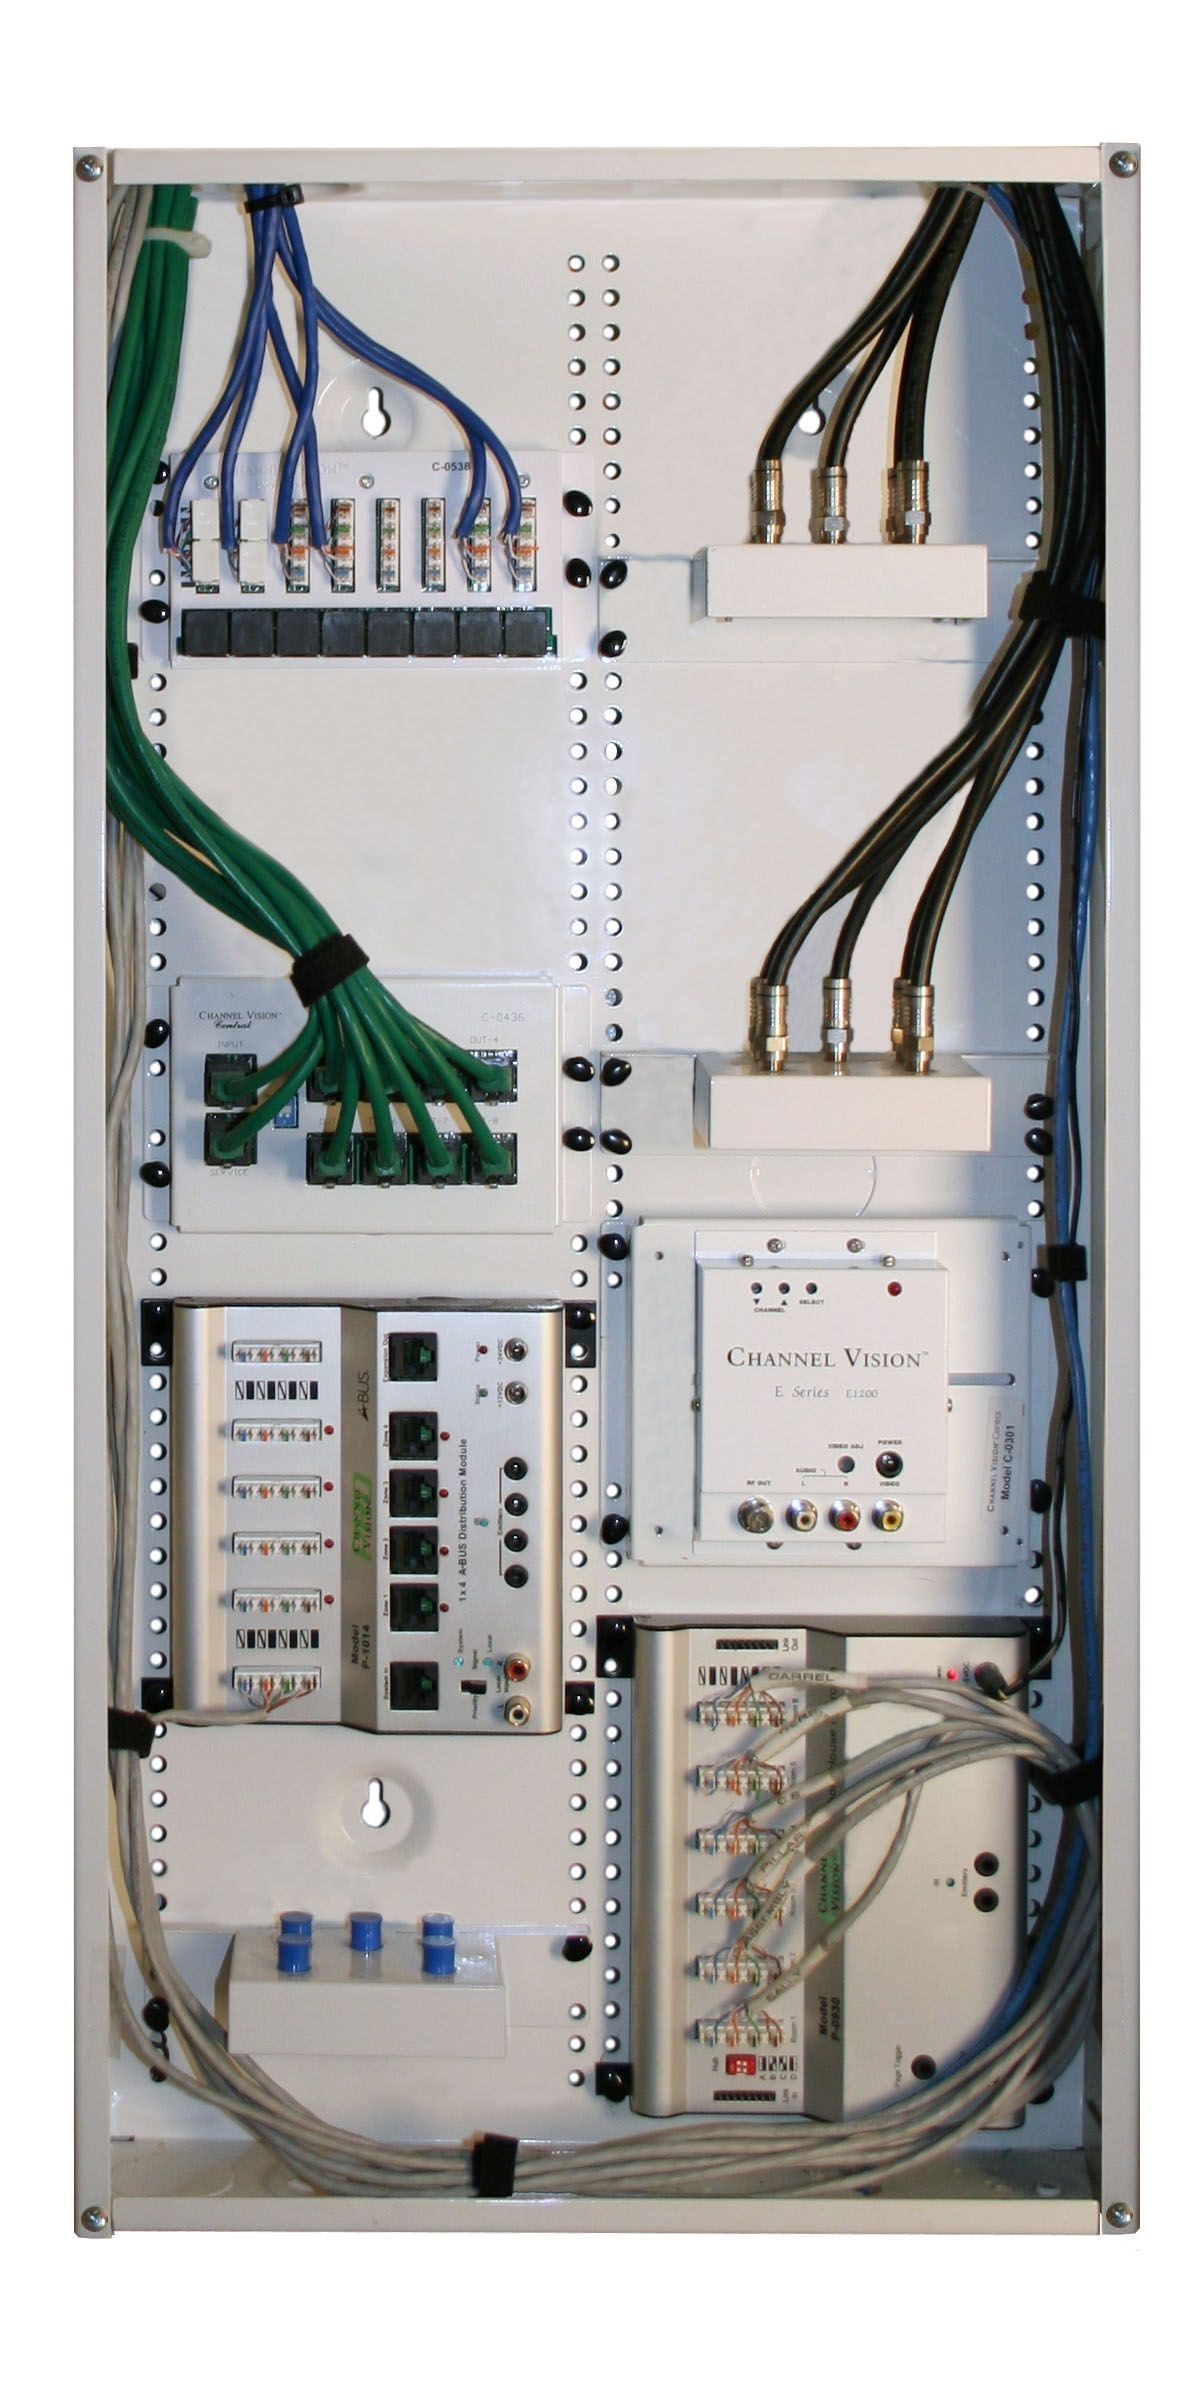 Structured Wiring Cable Distribution Panel for Home TV Inter Audio and Communications | Audio